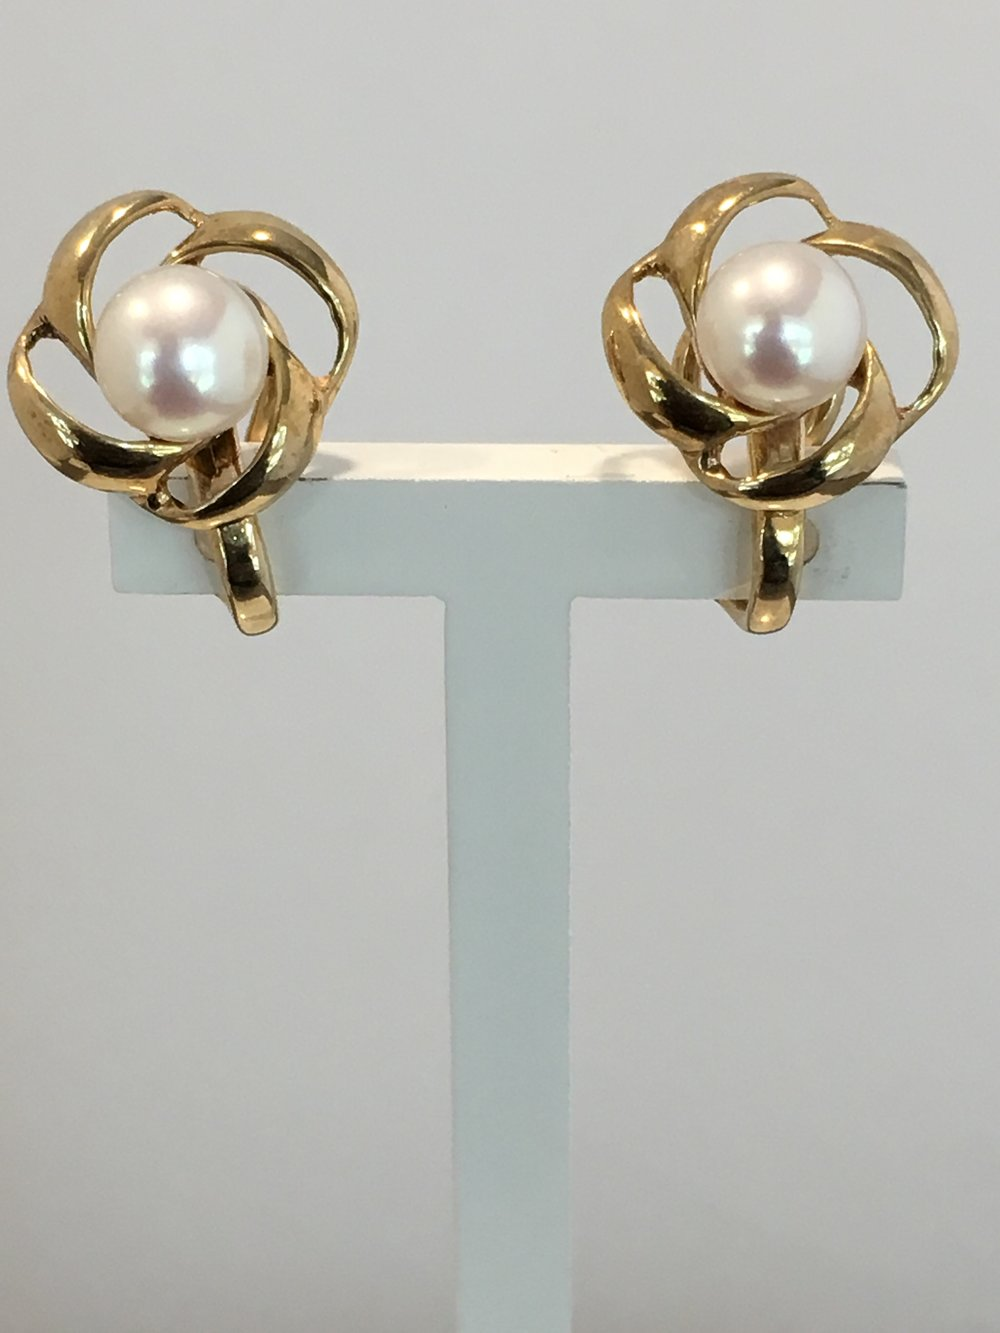 9ct Yellow Gold Clip-on Pearl Earrings